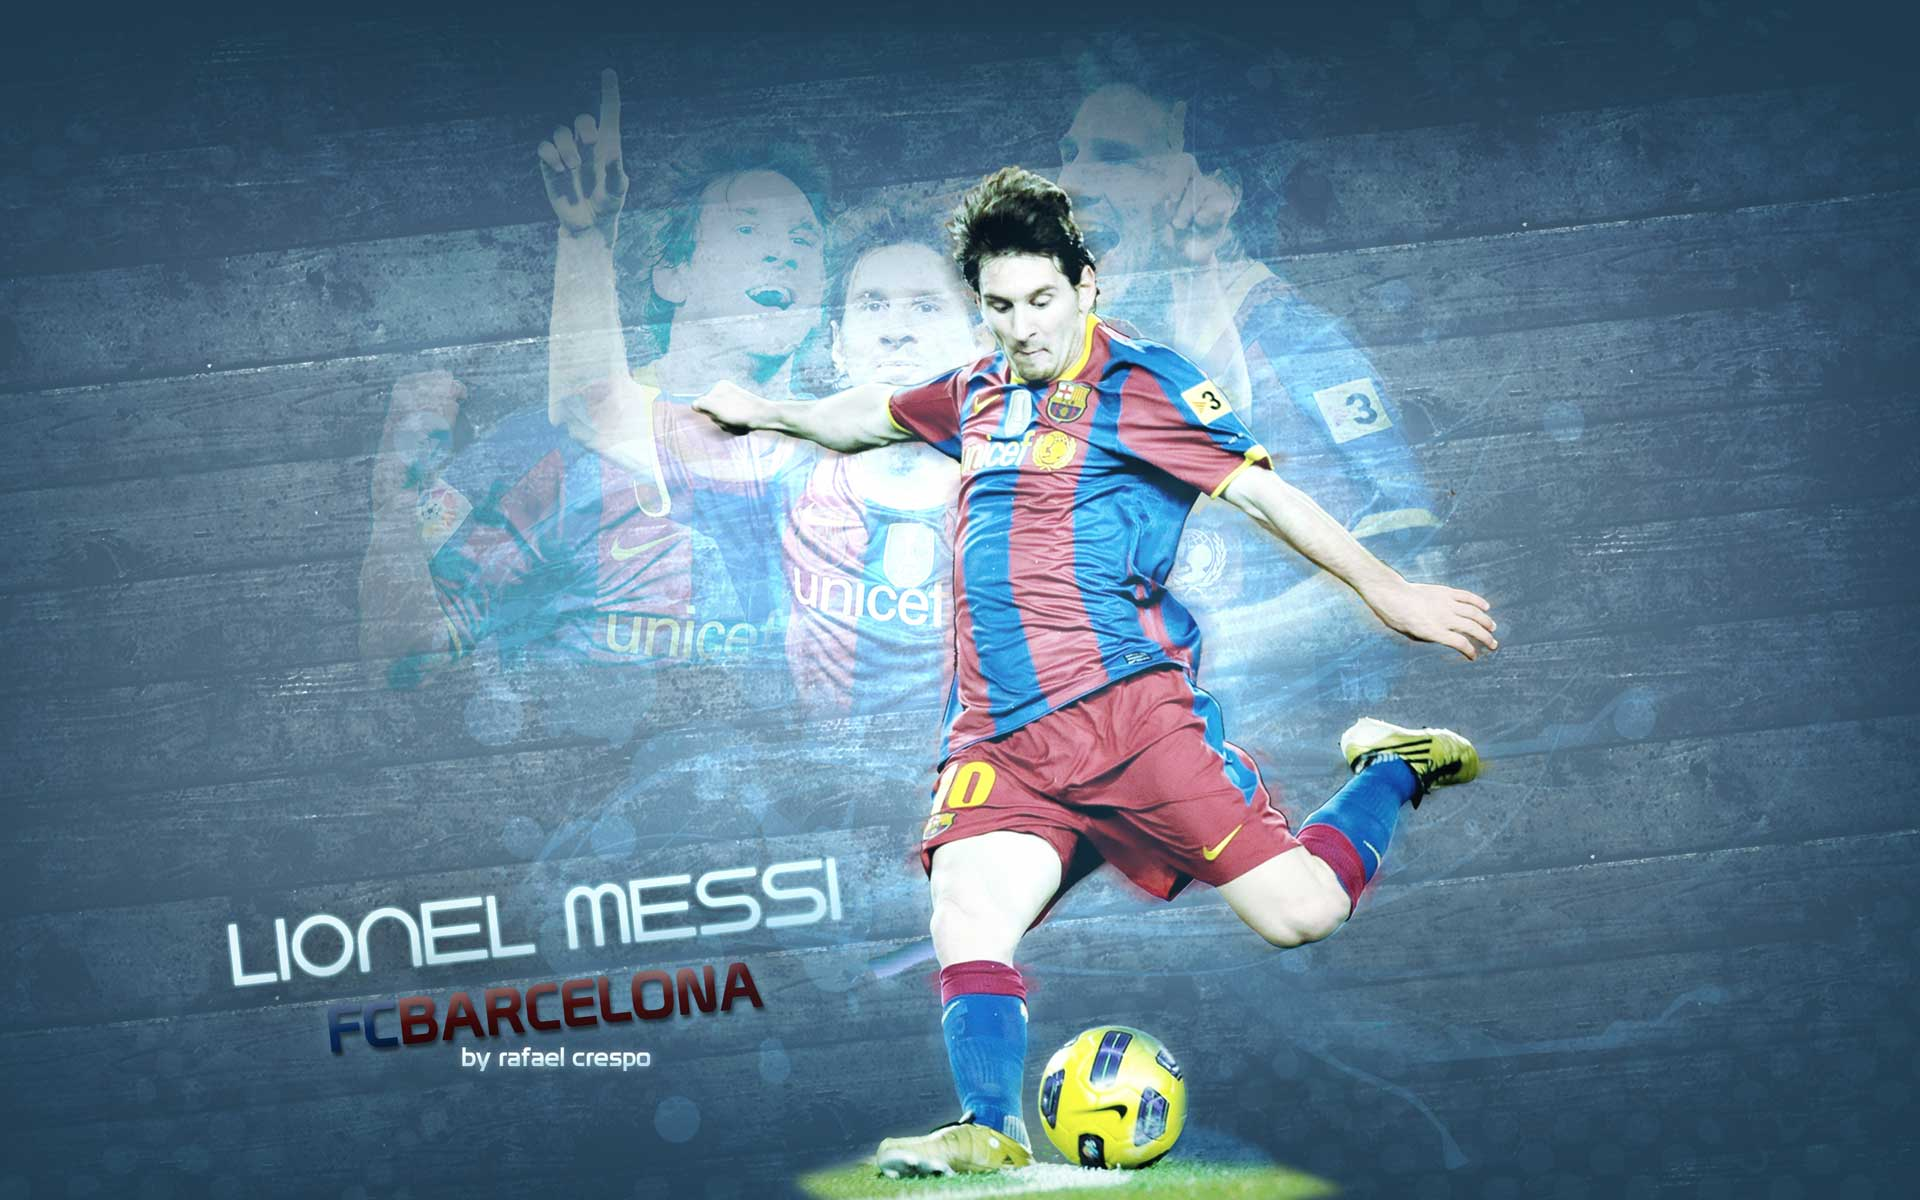 Download Lionel Messi Images Hd Backgrounds For Pc  Wallvie Lionel messi wallpaper HD 1920x1200